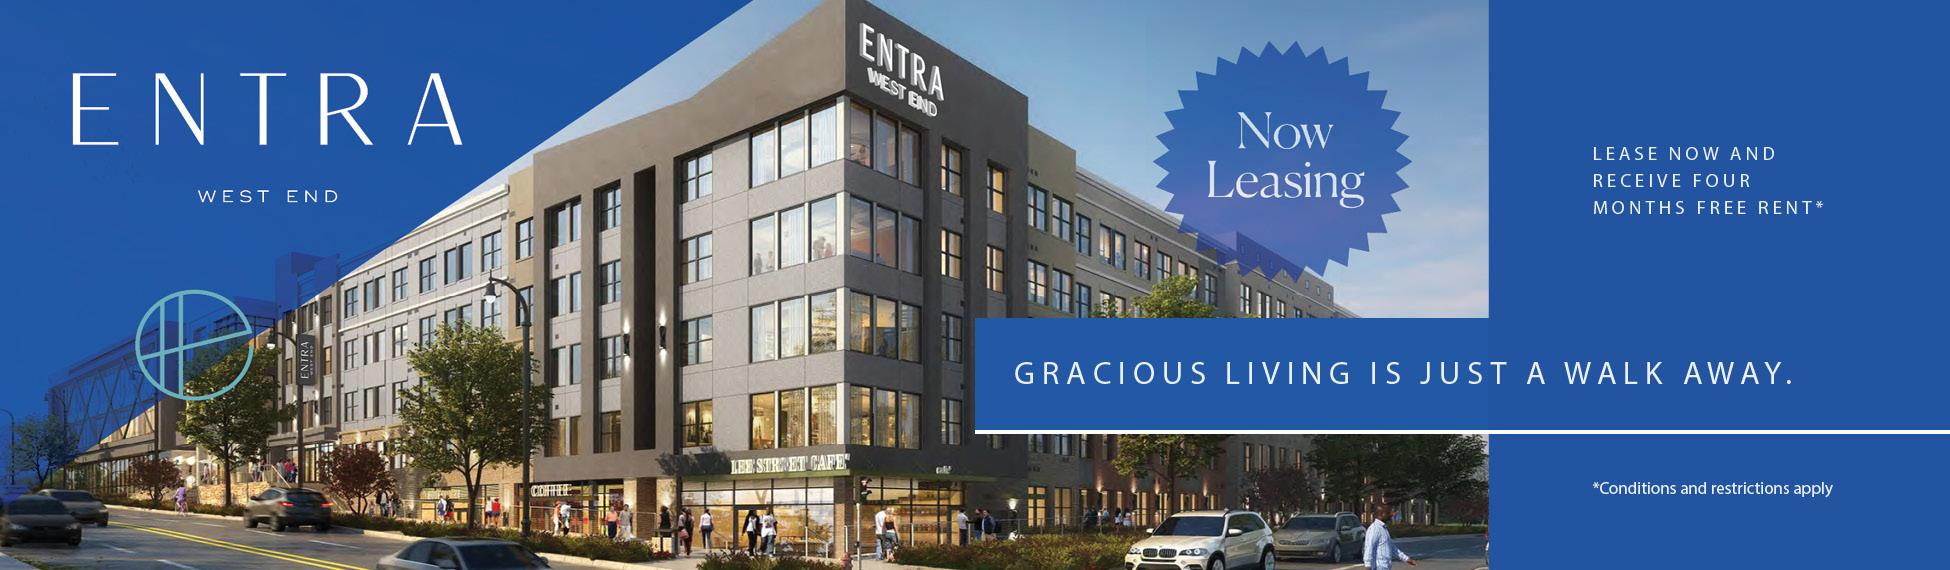 Entra West End, Gracious Living is just a walk away